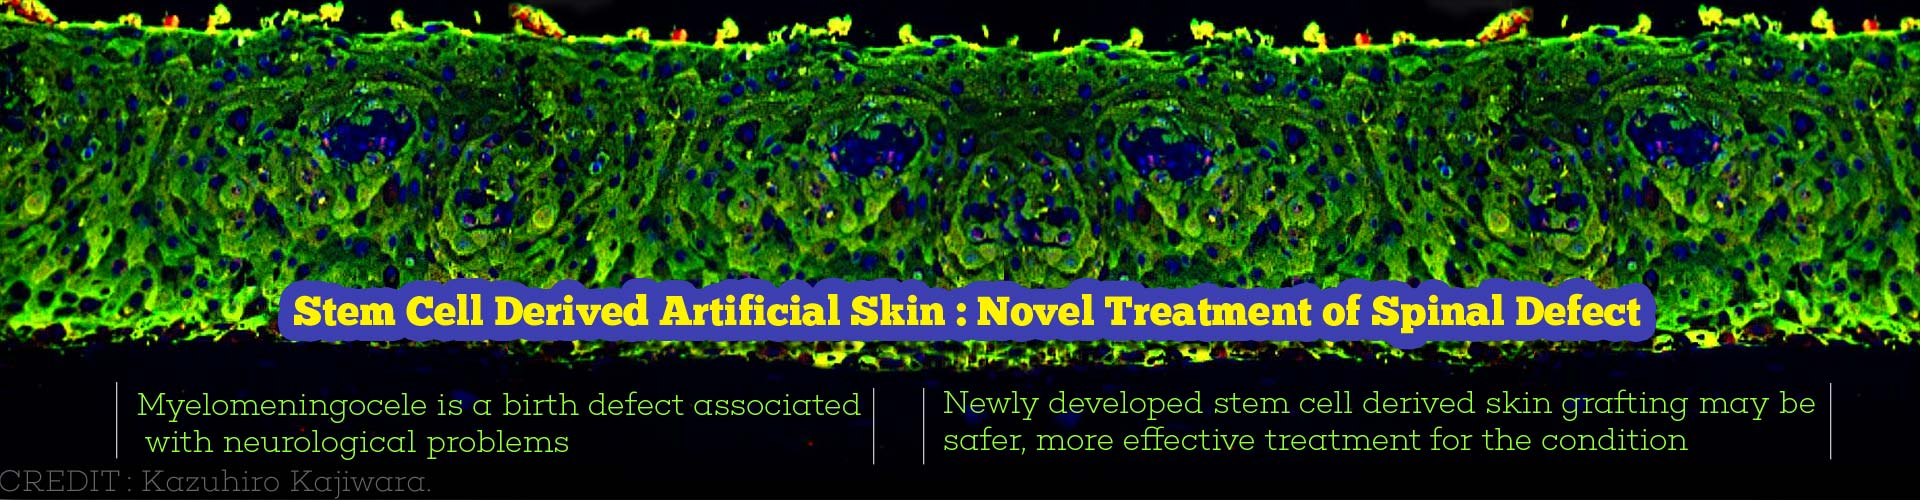 3D Skin From Induced Pluripotent Stem Cells To Treat Spinal Birth Defect